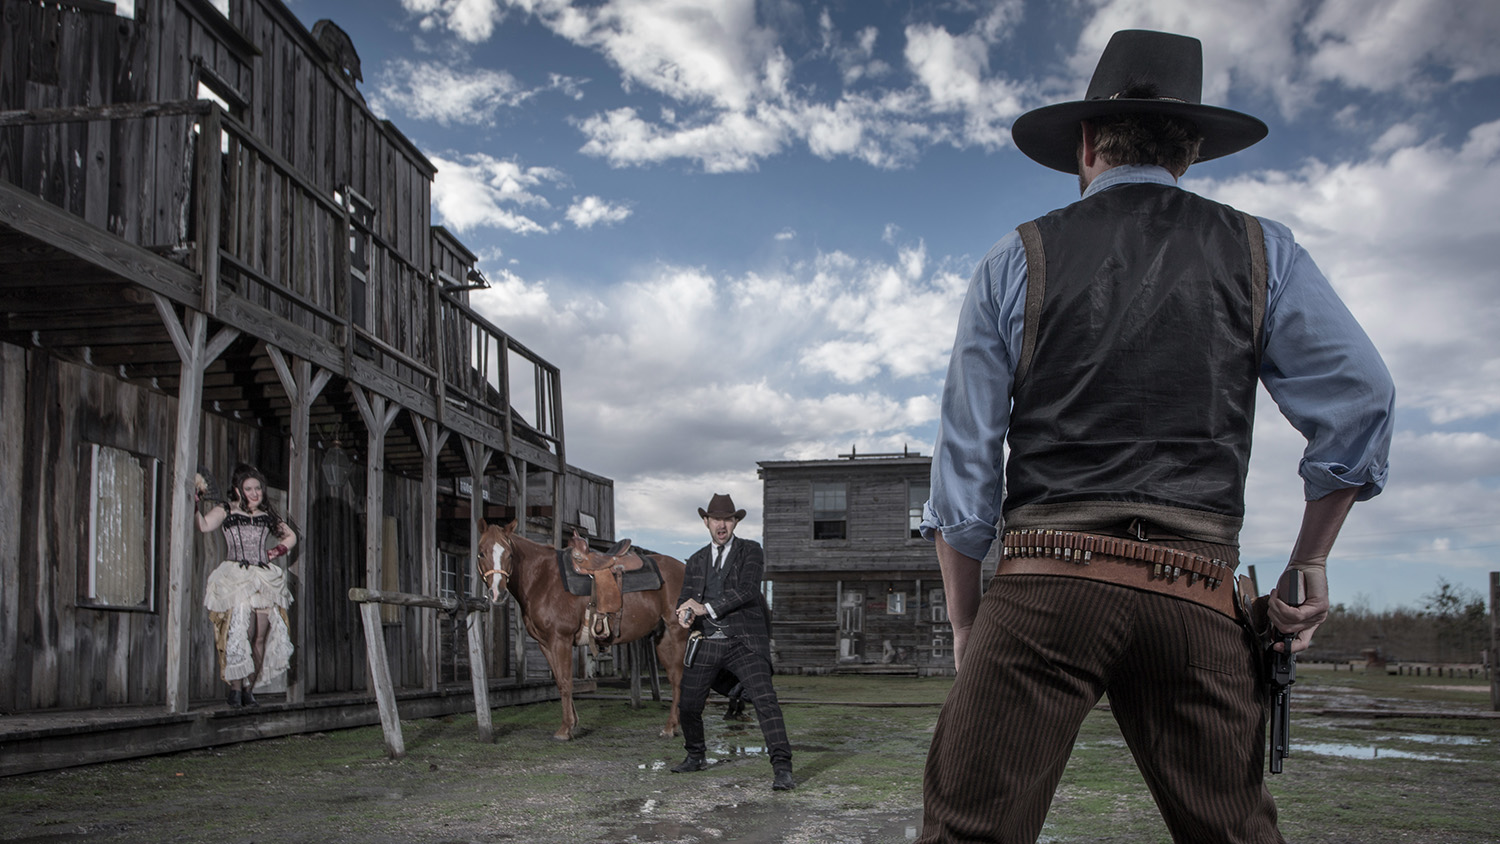 western gun fight with hooker Wild West at J Loraine Ghost Town